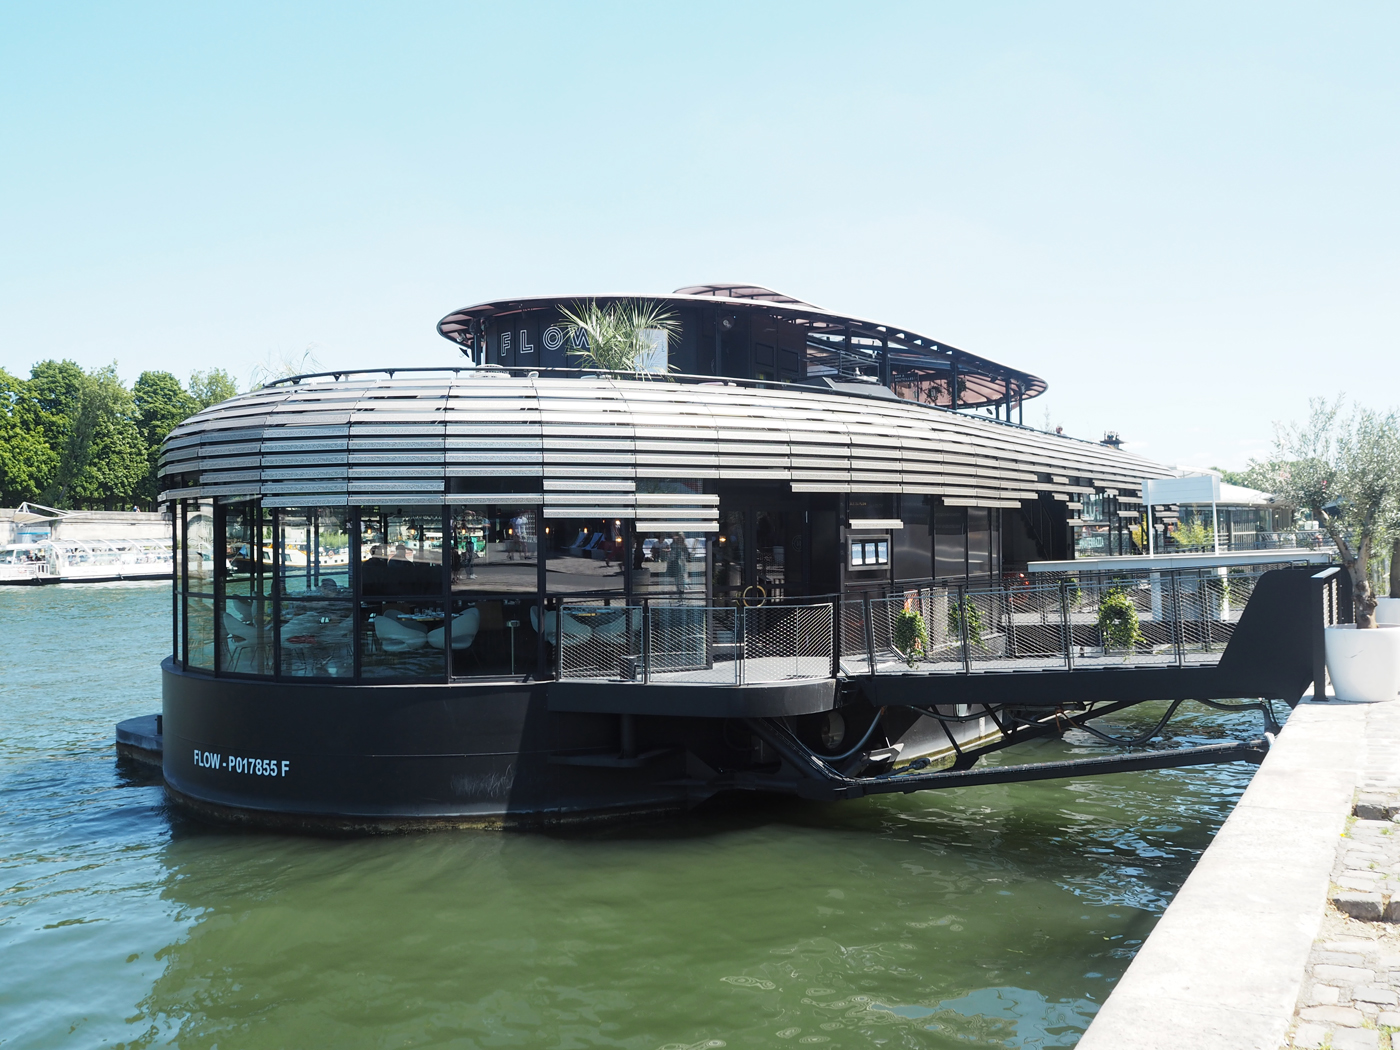 FLOW restaurant on the River Seine Paris